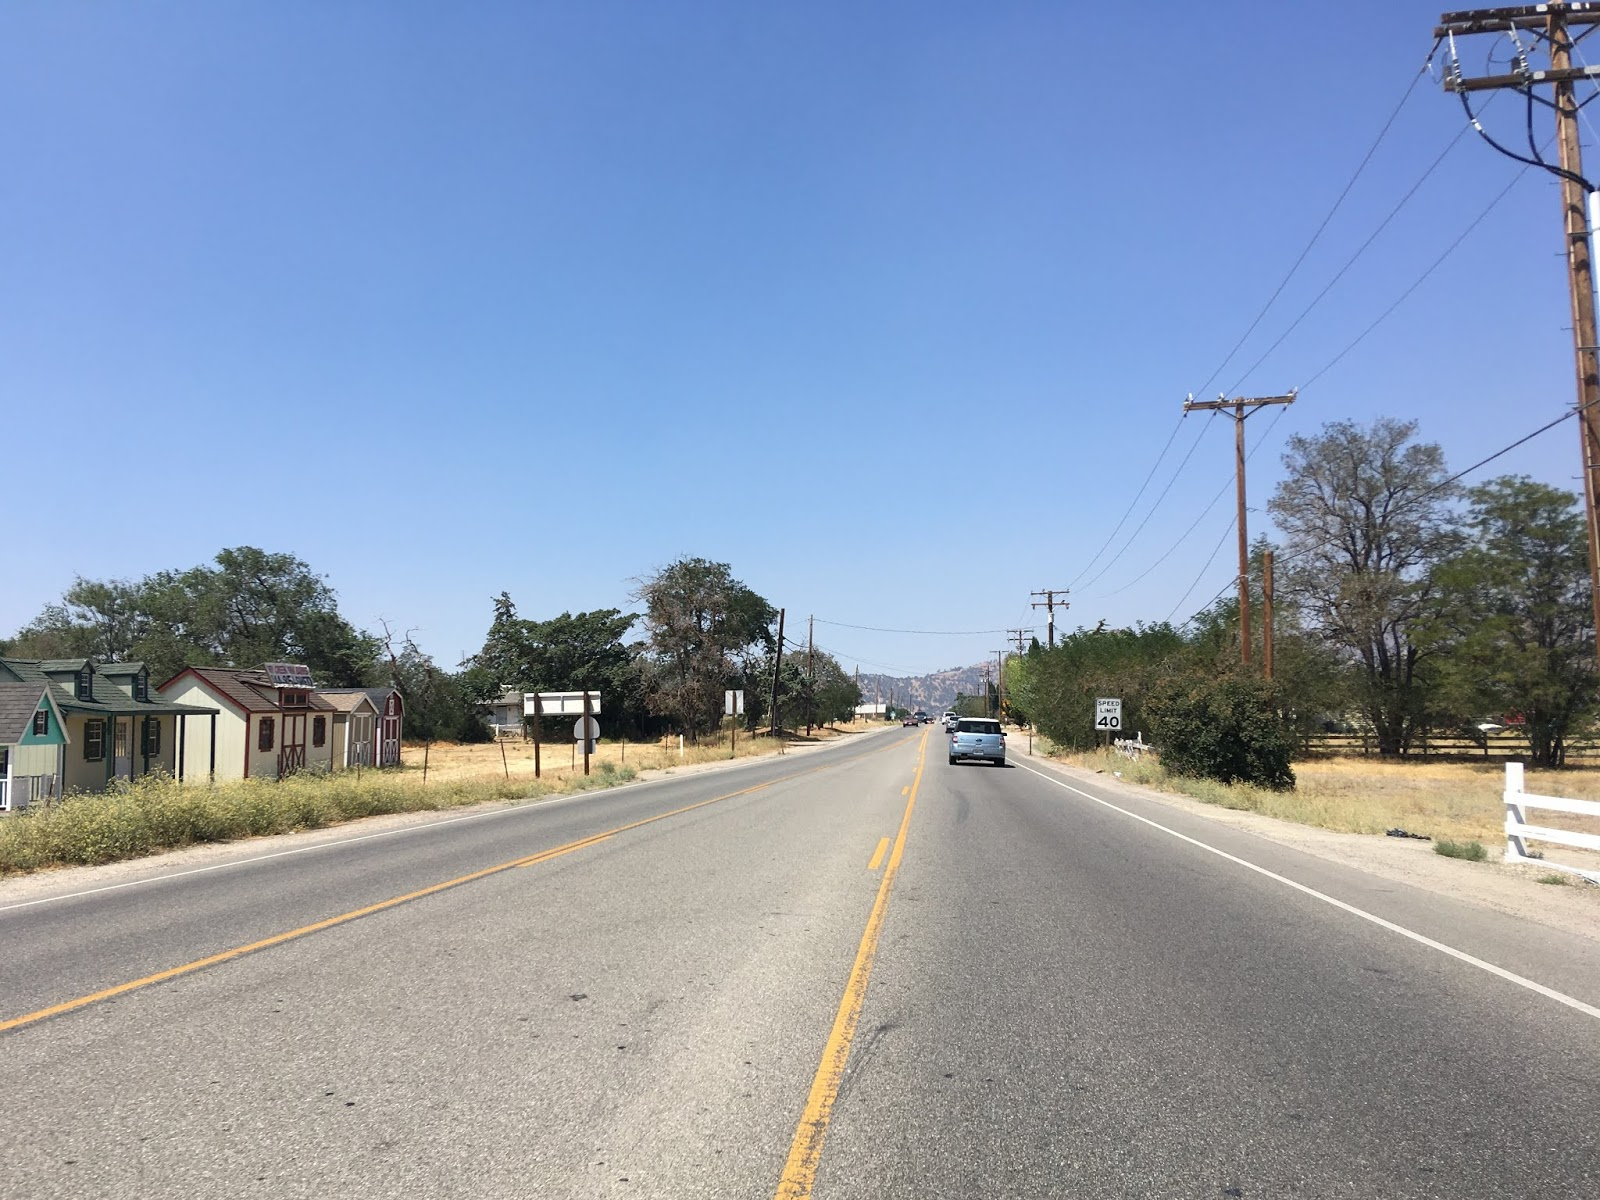 us 466 diverged from valley boulevard and ca 202 at woodford tehachapi road heading northward which would be on the right in the photo below